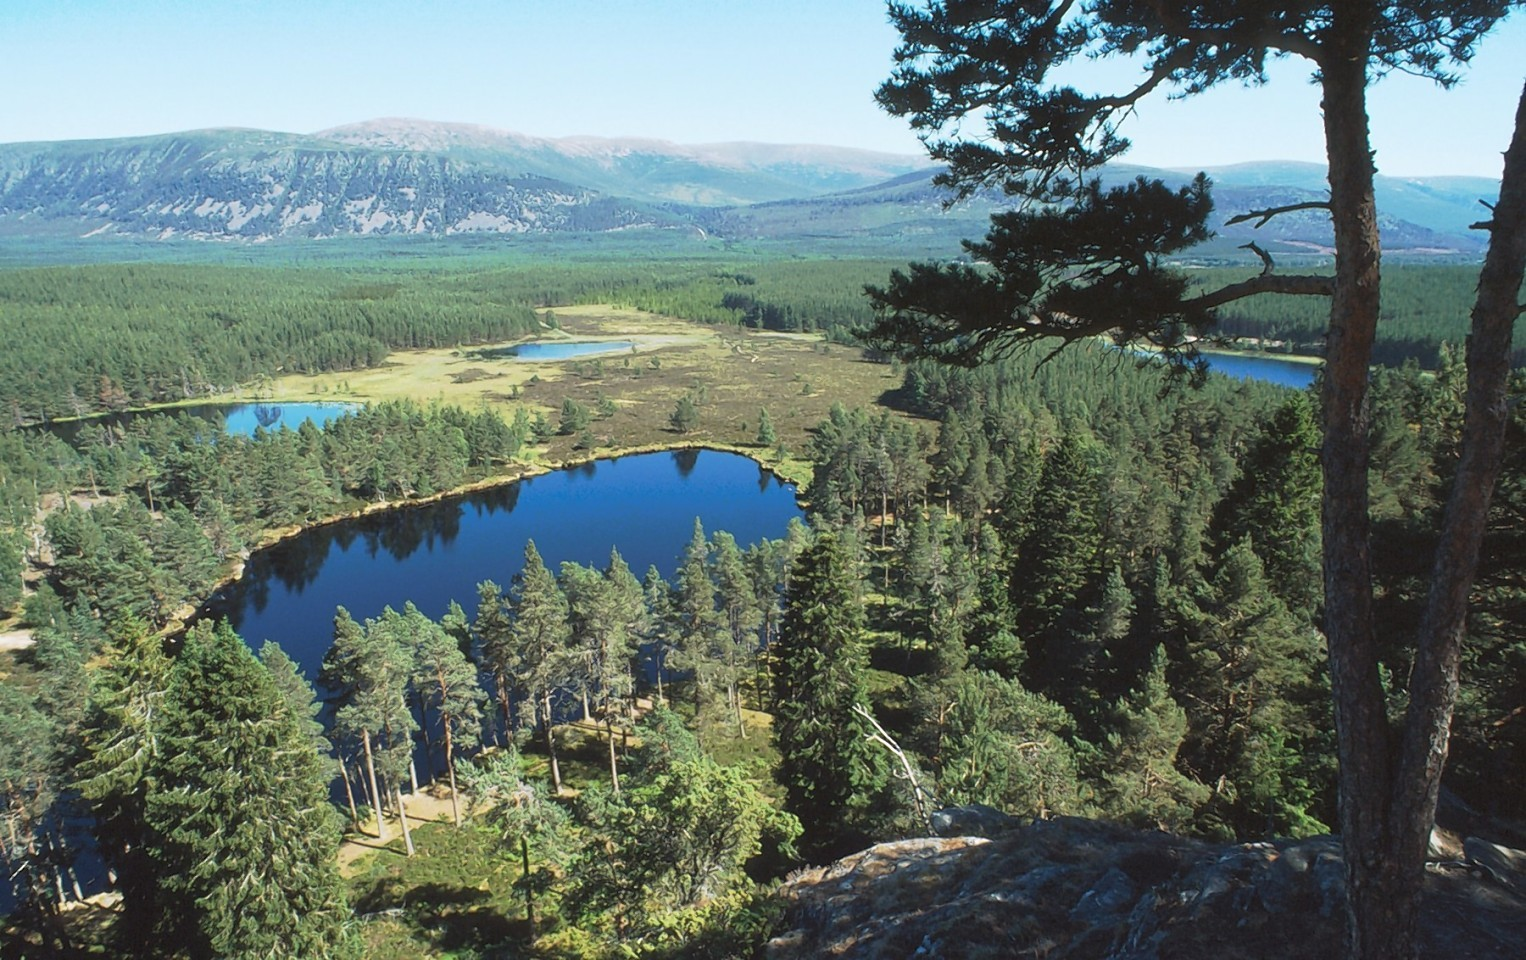 Plans are being drawn up to improve tourist provision at Glenmore